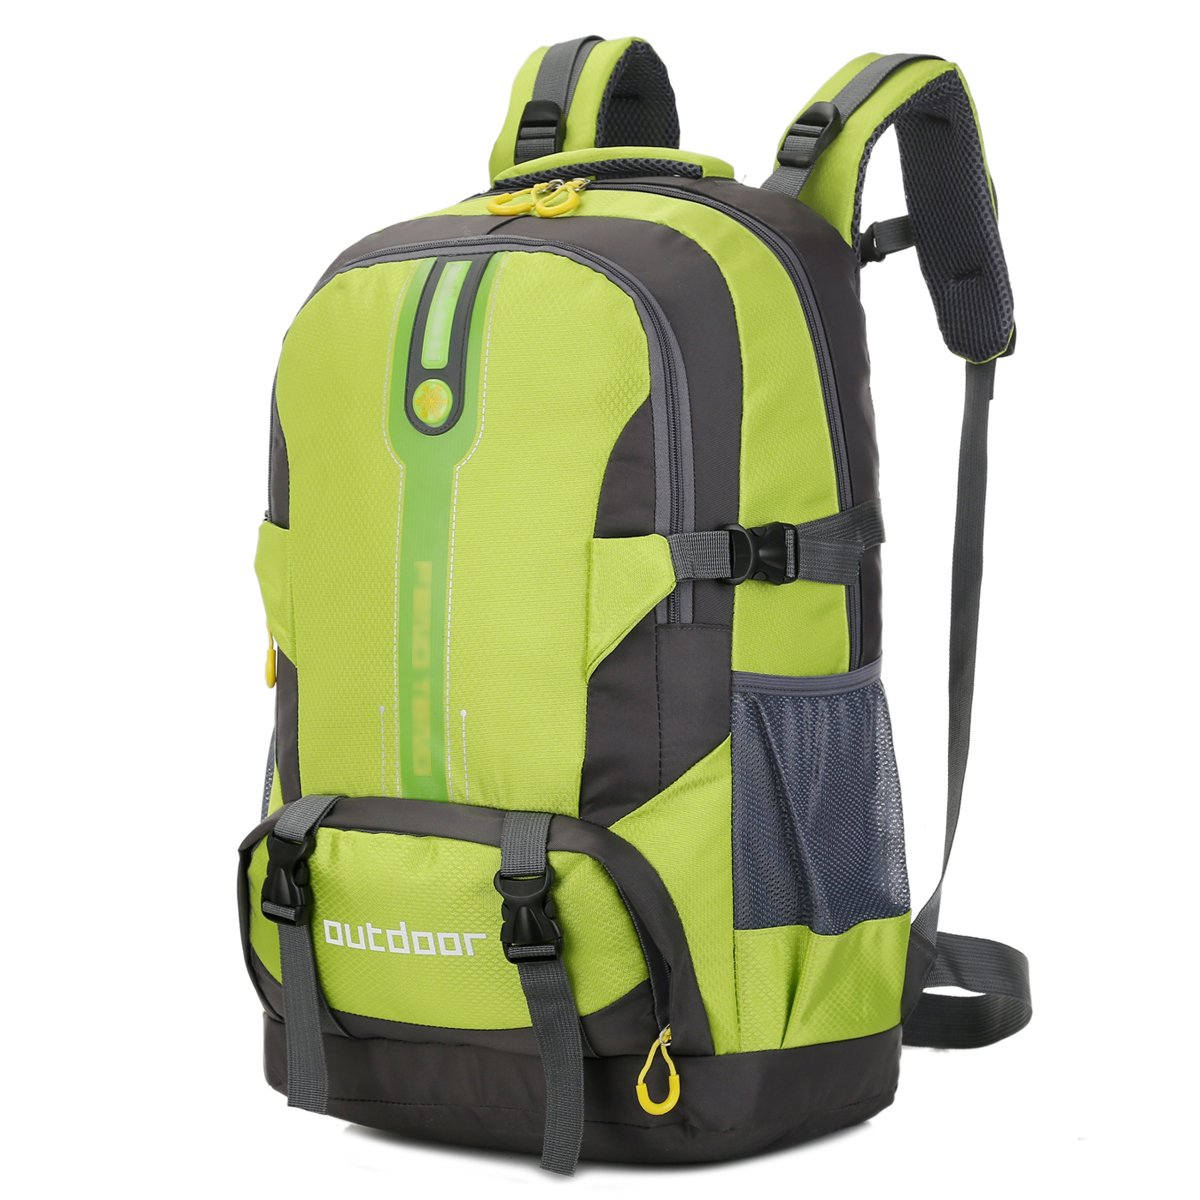 Fodlon Hiking Backpack 50L Ultralight Backpack for Camping Hiking Mountaineering Travel